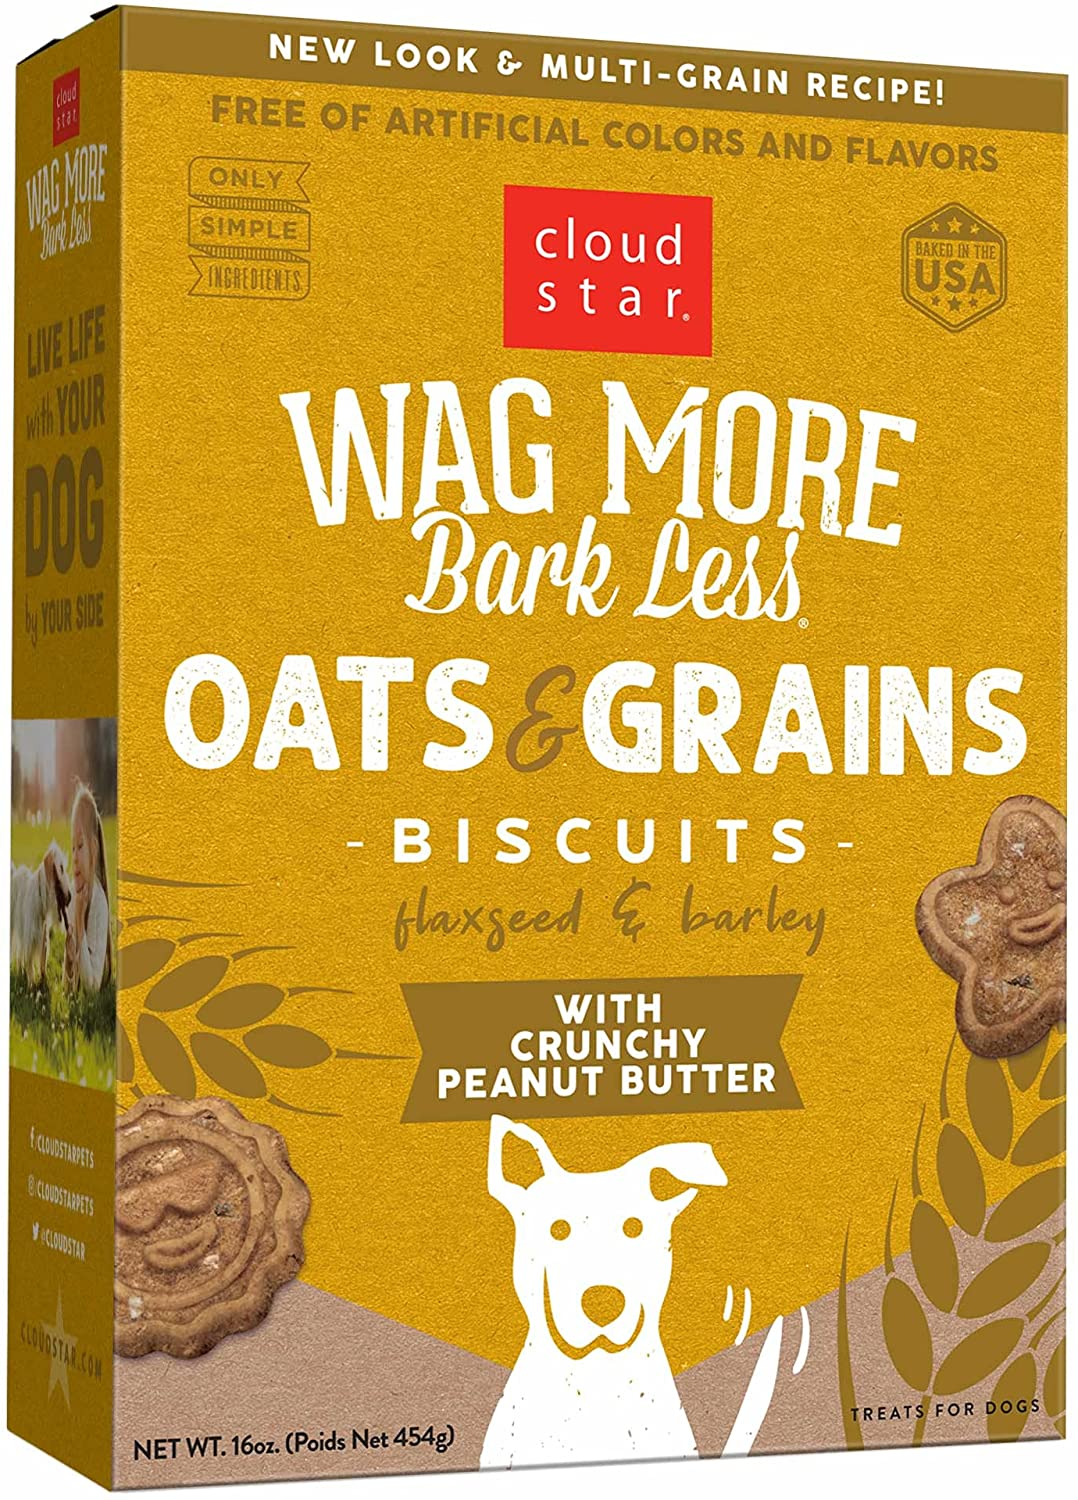 Cloud Star Wag More Bark Less Oven Baked with Crunchy Peanut Butter Cookie Recipe Dog Treats, 16-oz box